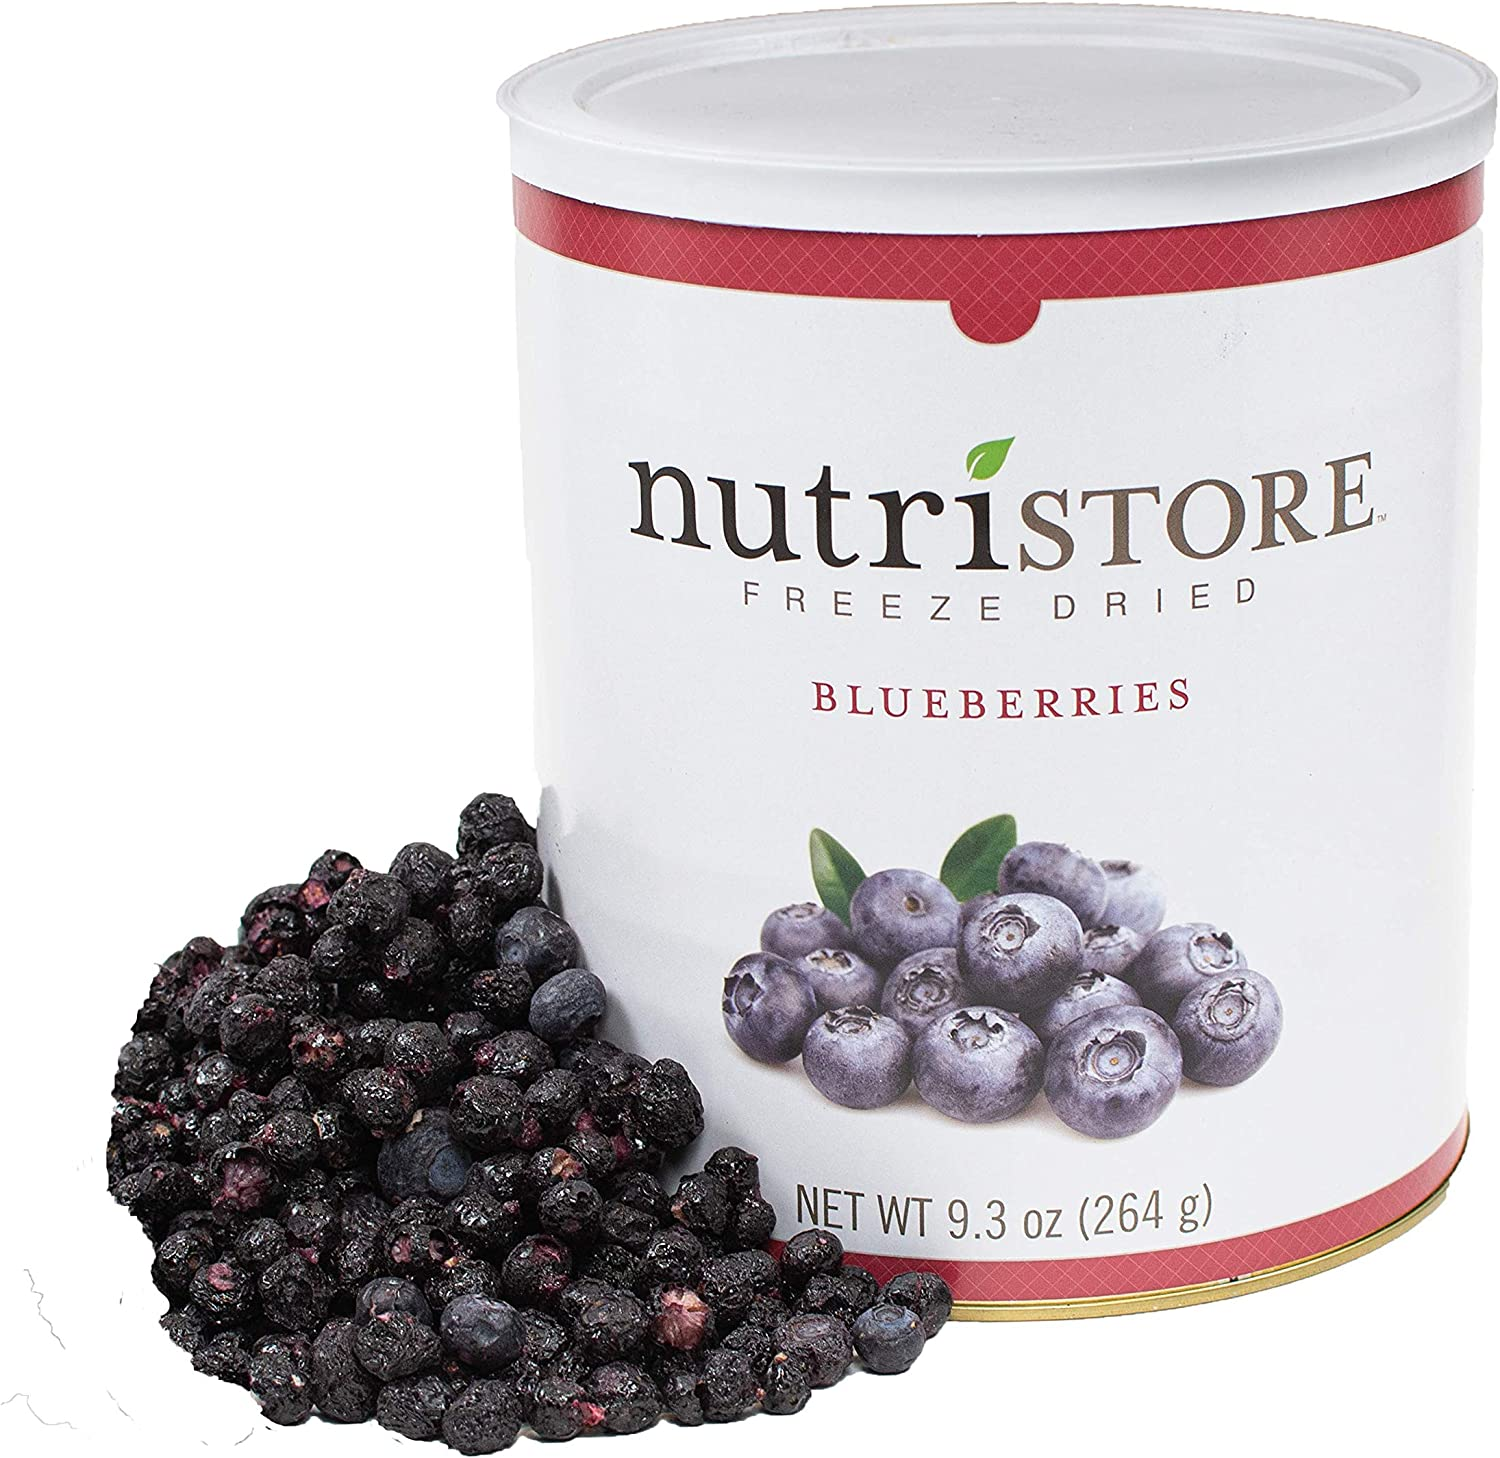 Nutristore Freeze Dried Blueberries Memphis Mall Snack Bulk sold out Healthy Fruit